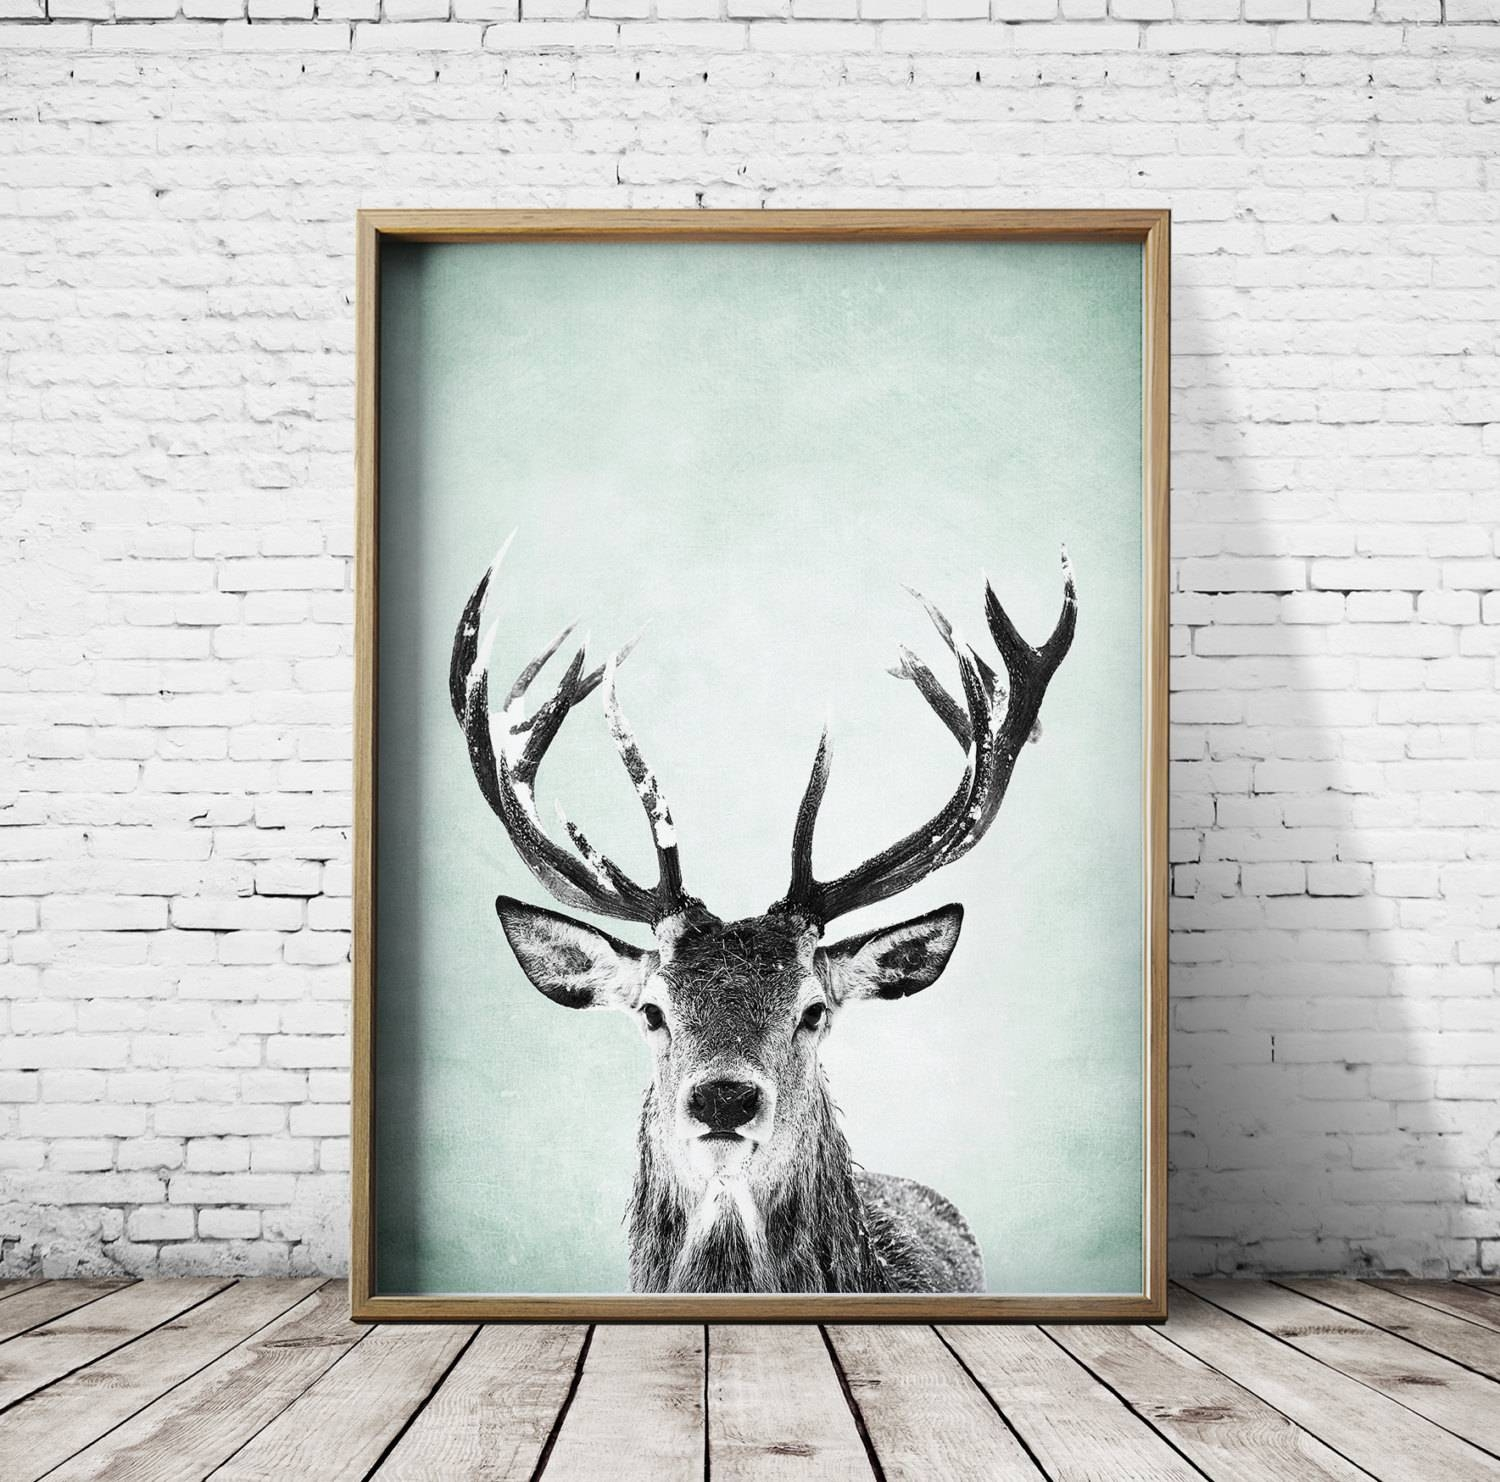 Wall Art Print Deer Print Deer Antlers Stag Print Animal Print Pertaining To Most Recently Released Stag Wall Art (View 16 of 20)